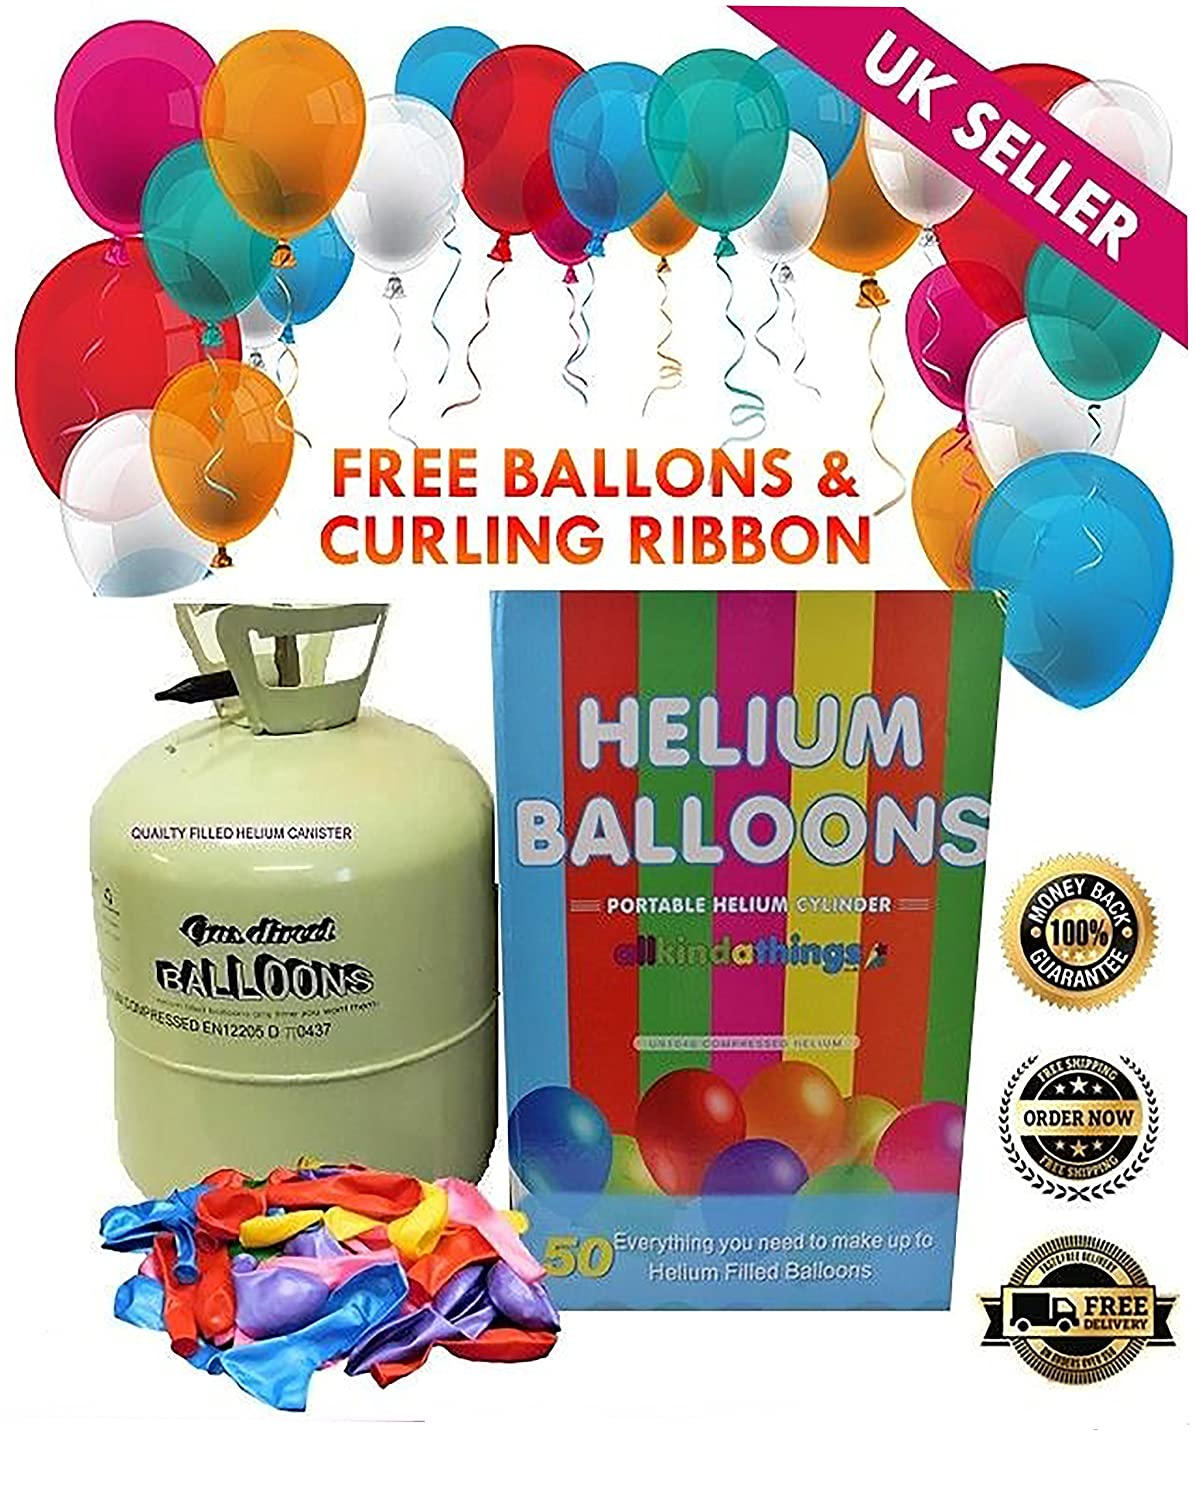 Disposable Helium Large Gas Canister Cylinder To Fill 50 Balloons with Balloons Included Allkindathings 252262211997